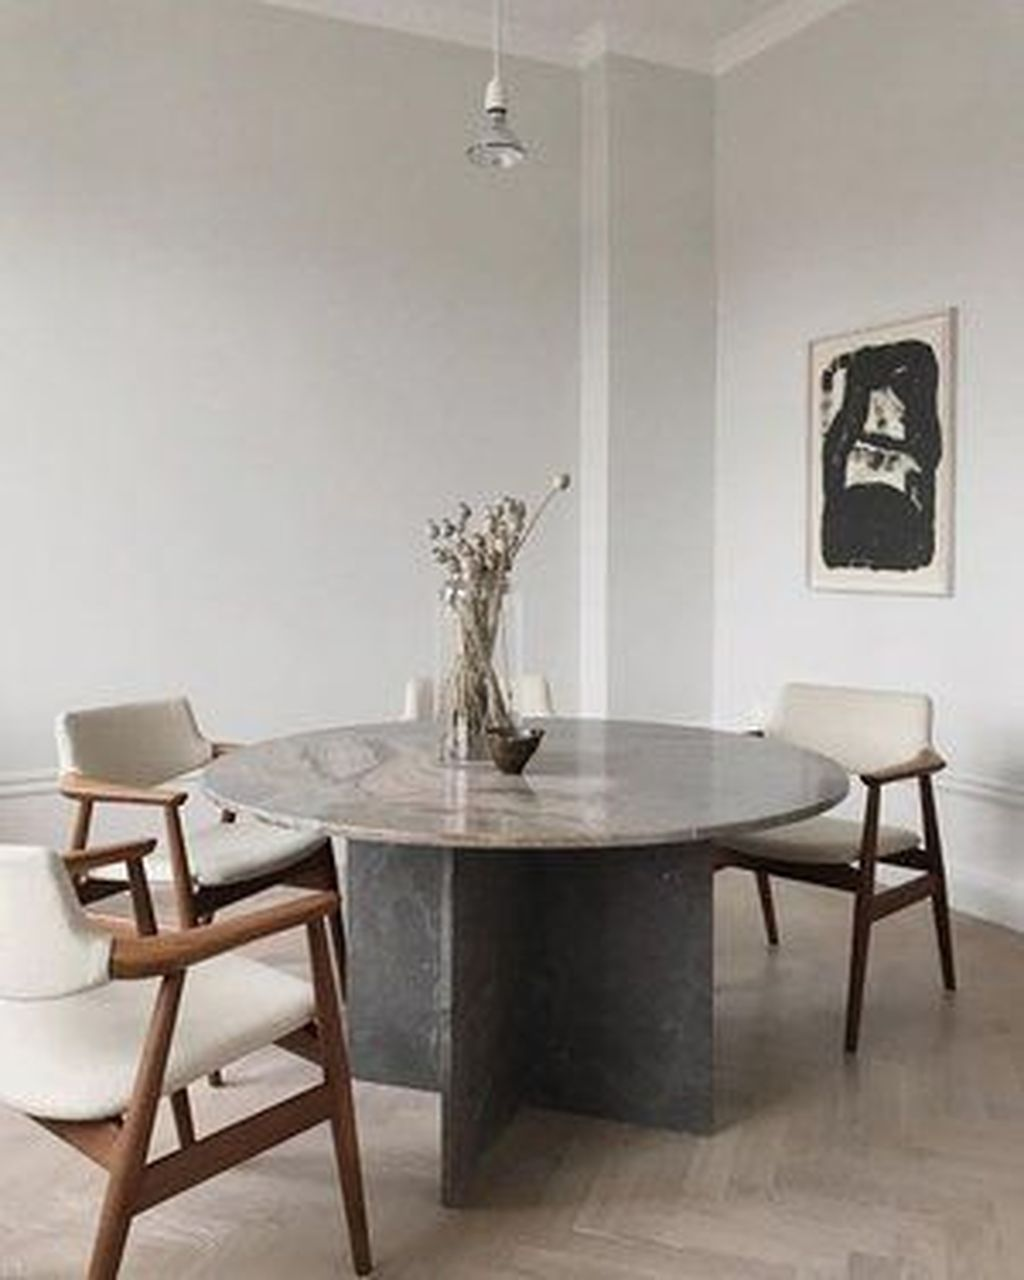 Stunning Dining Room Table Design With Modern Style 24